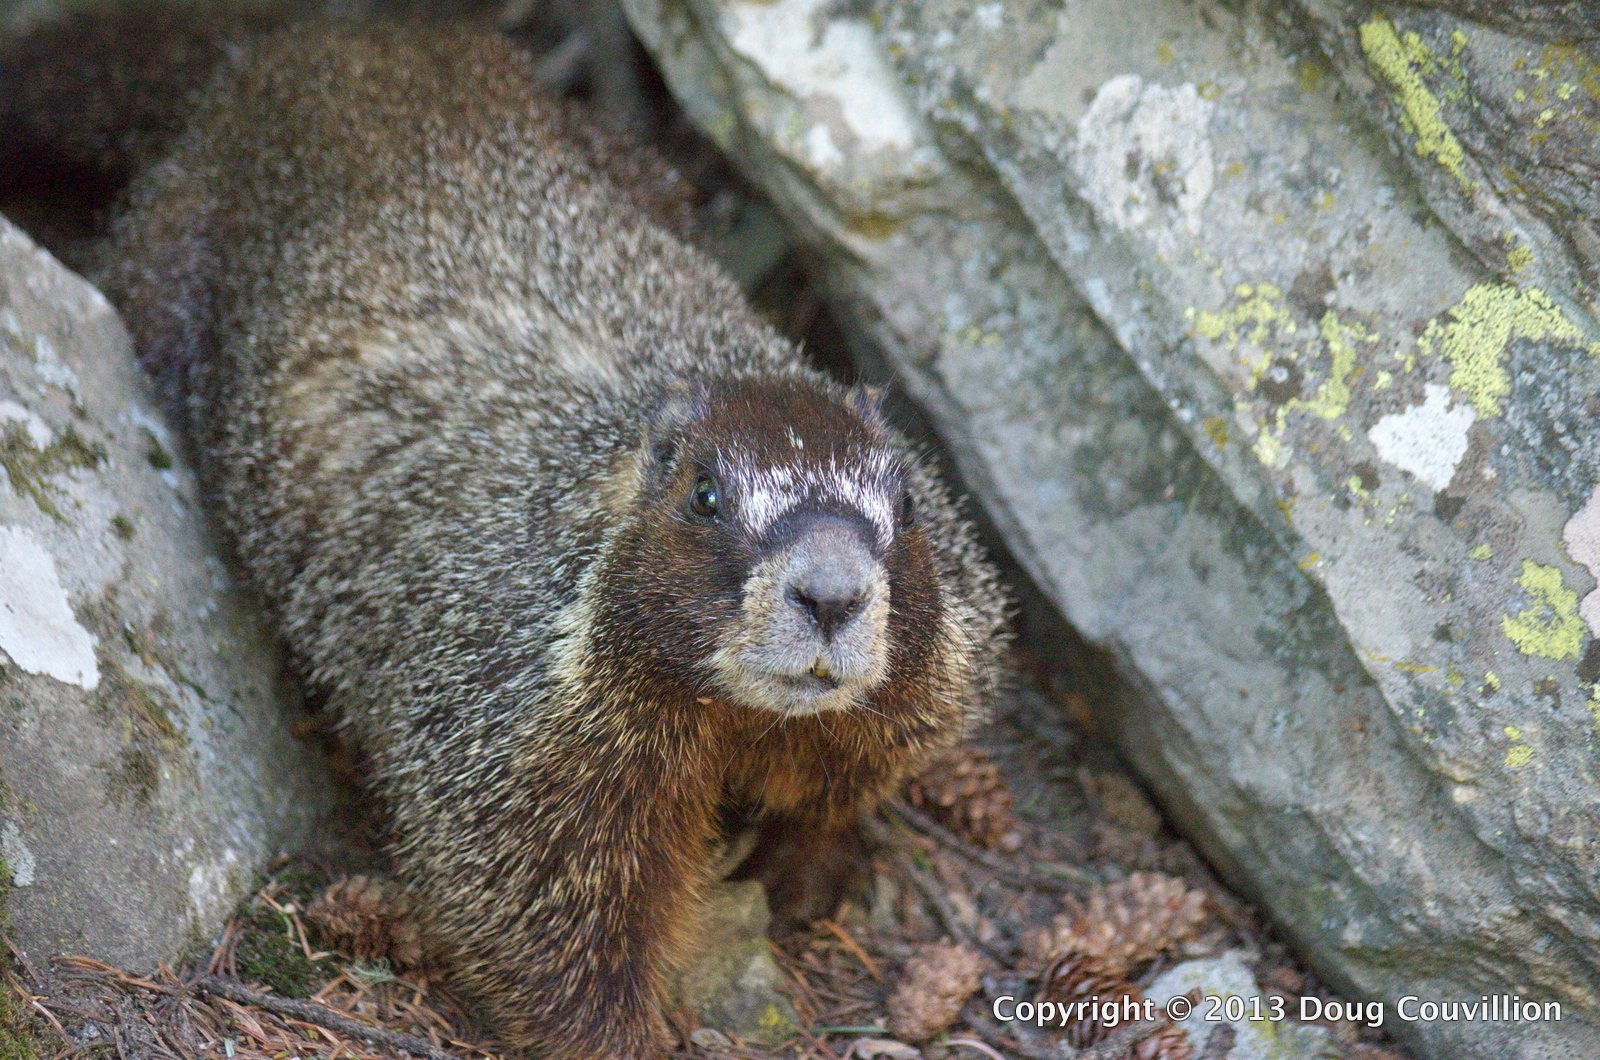 photograph of a Yellow-Bellied Marmot in Yellowstone National Park